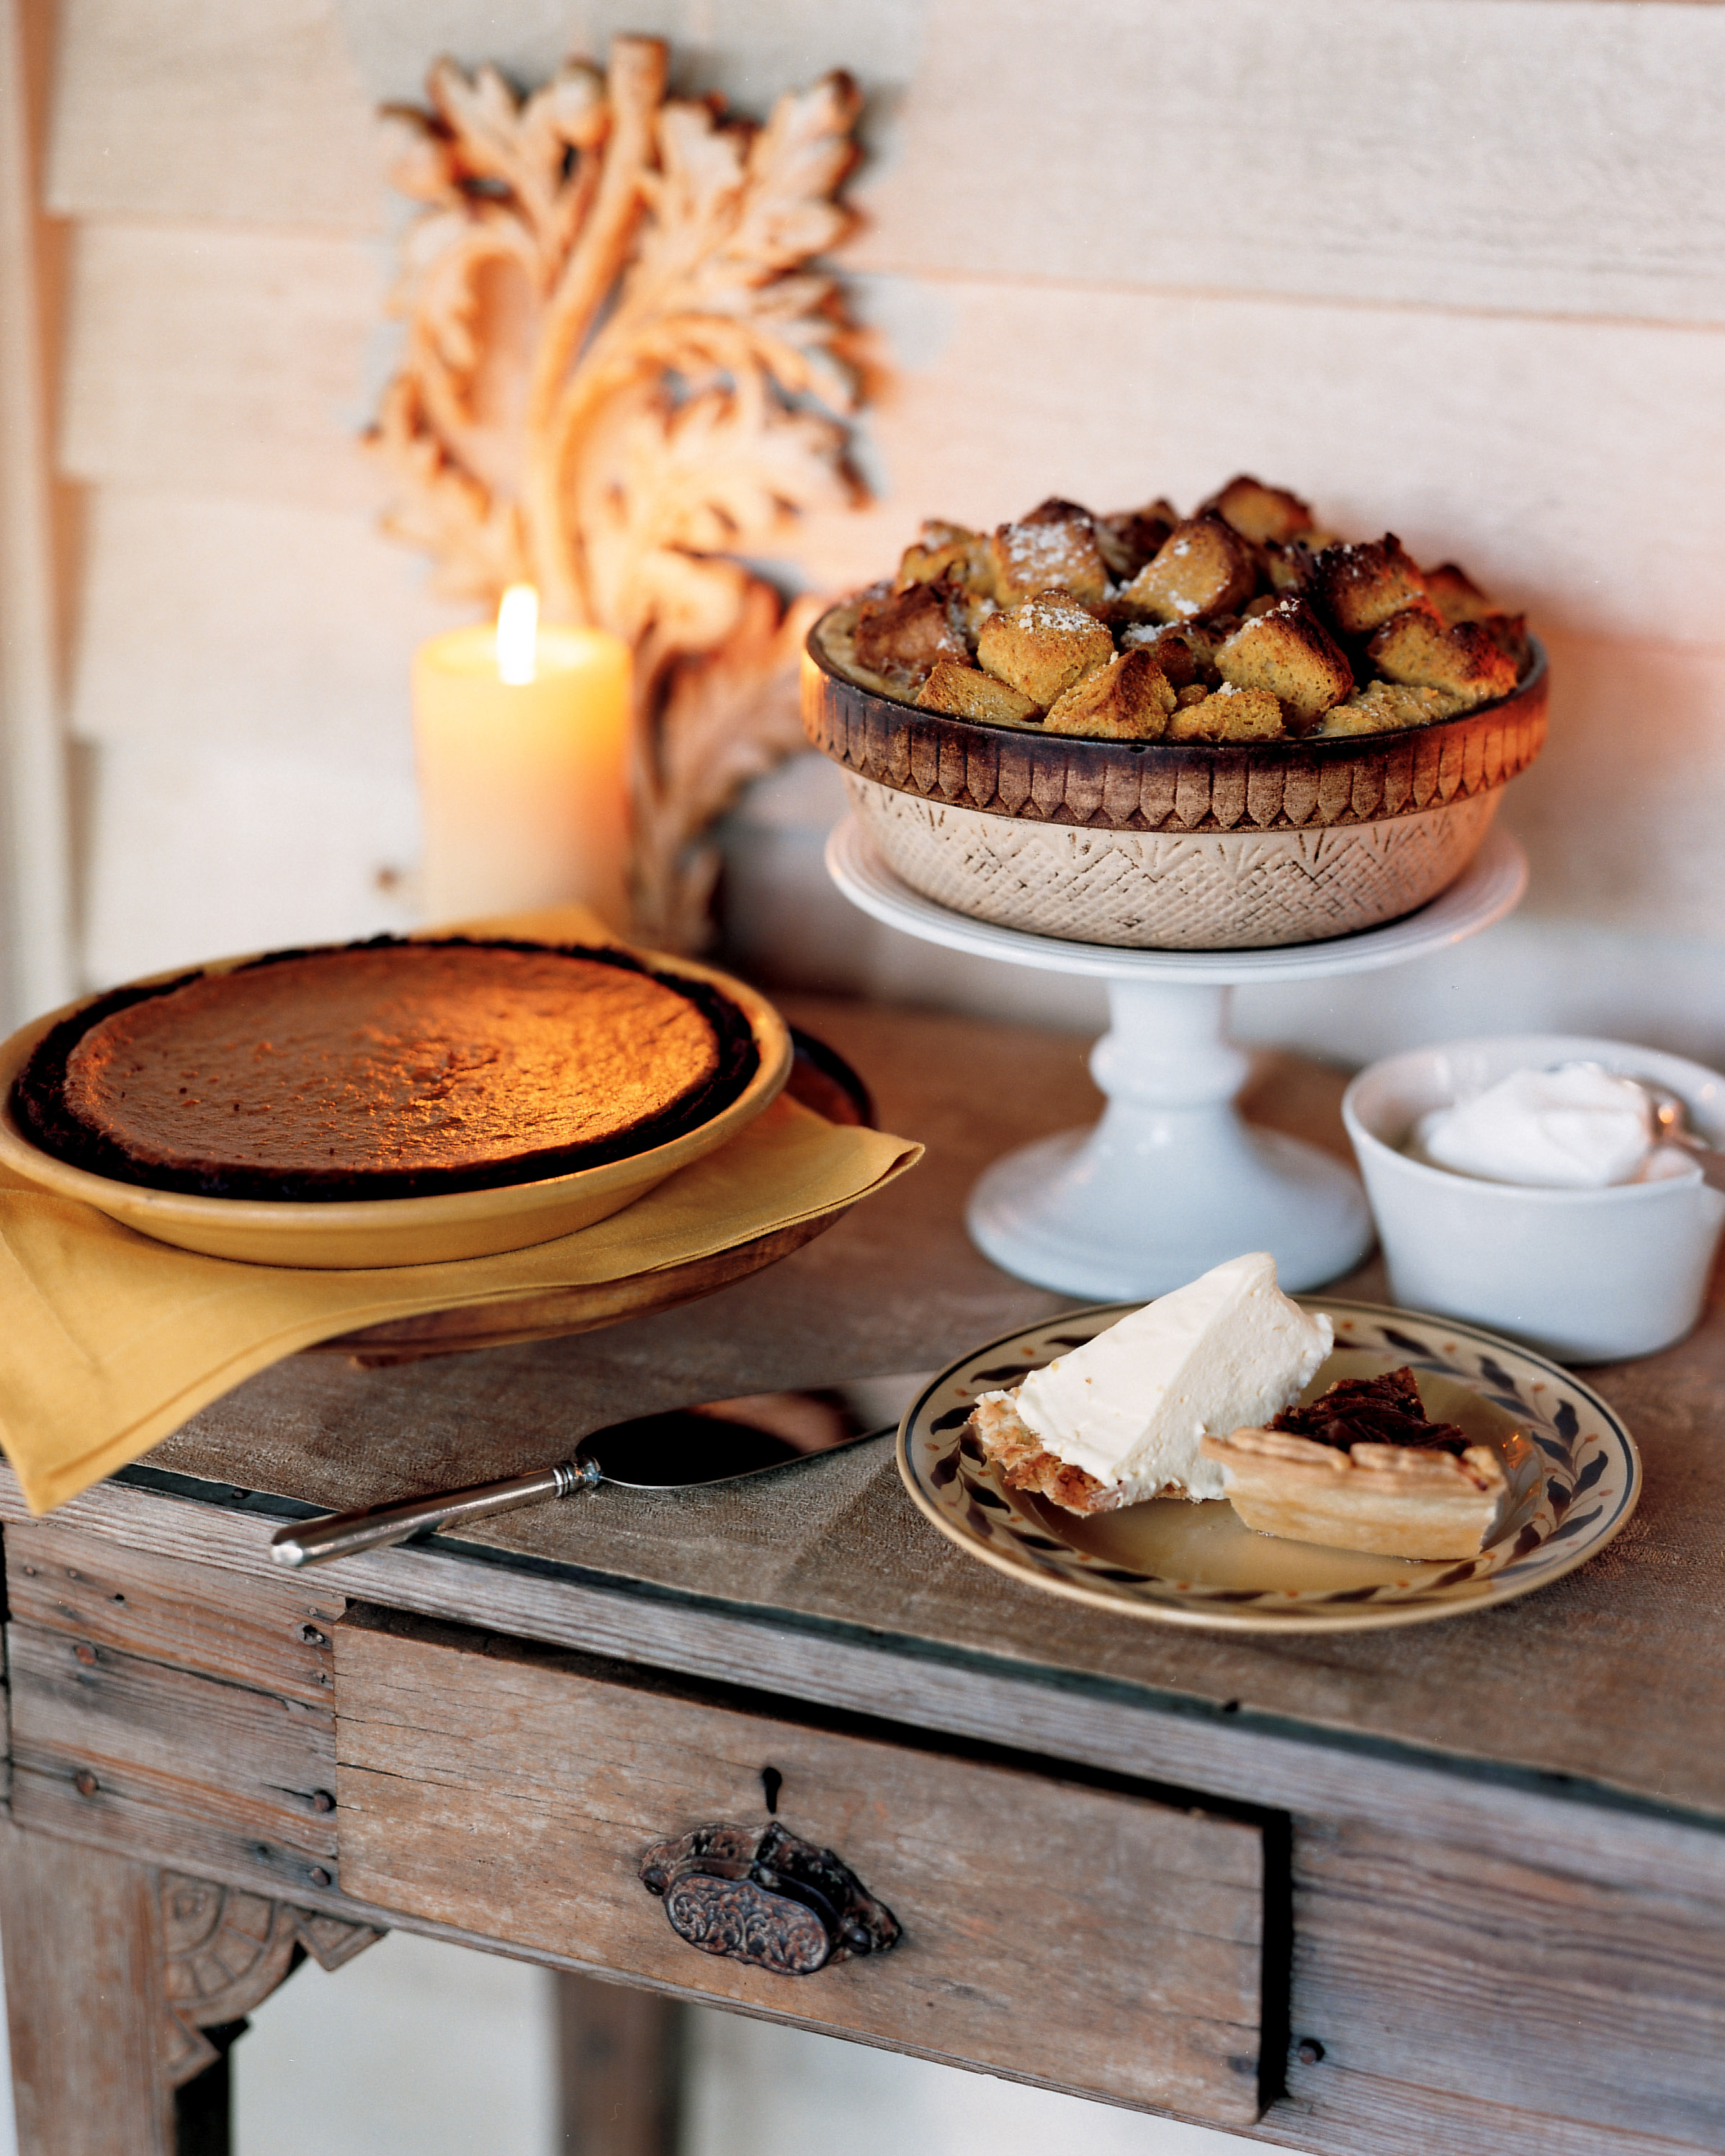 dessert table with pies and bread pudding